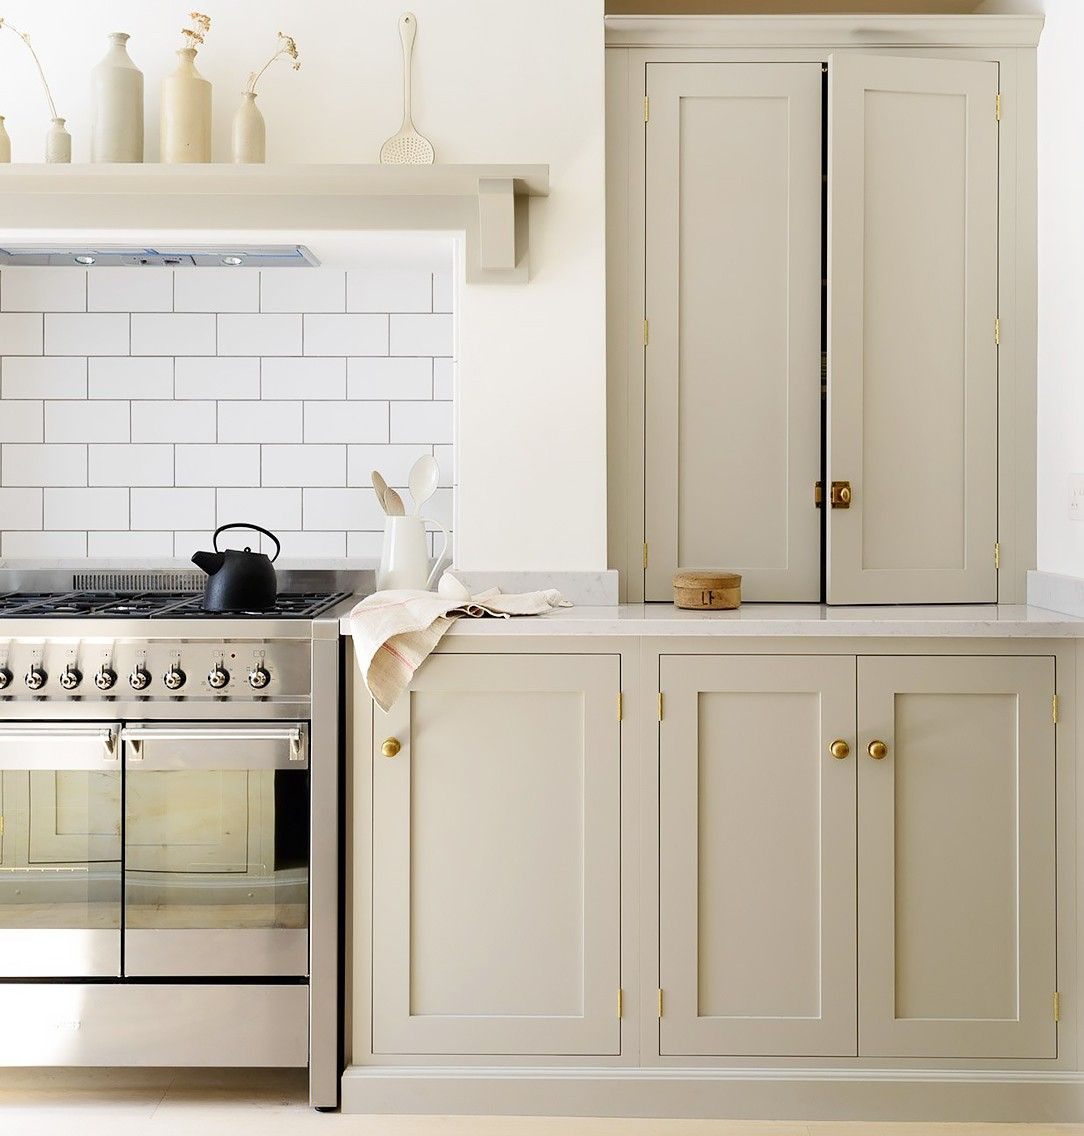 7 Colors To Paint Your Kitchen Cabinets Beige Kitchen Taupe